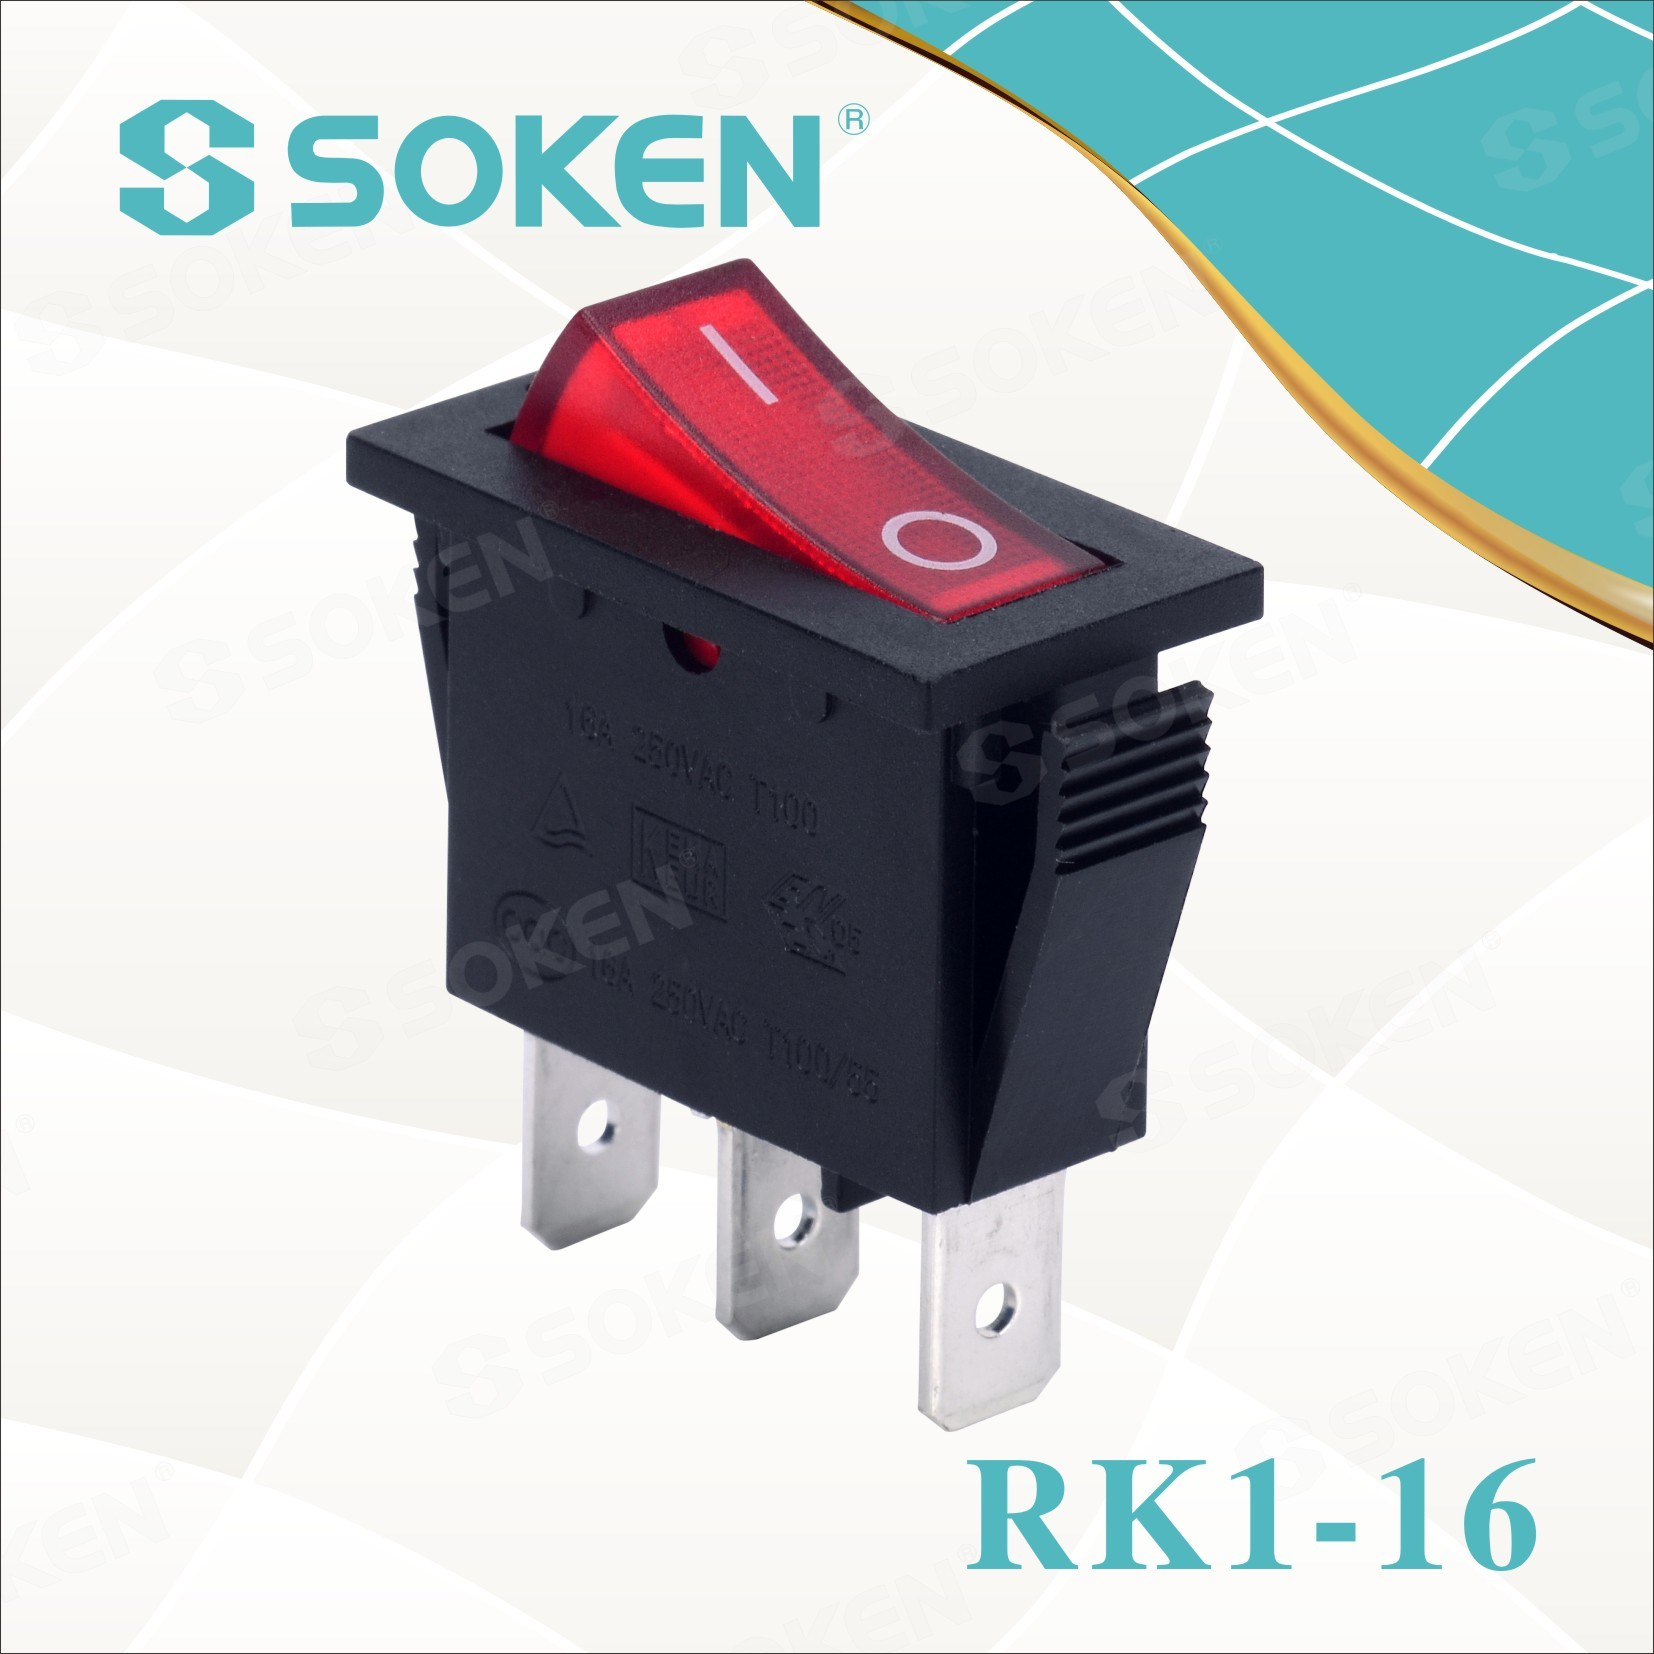 Soken Rk1-16 1X1n B / R na off Rocker Switch